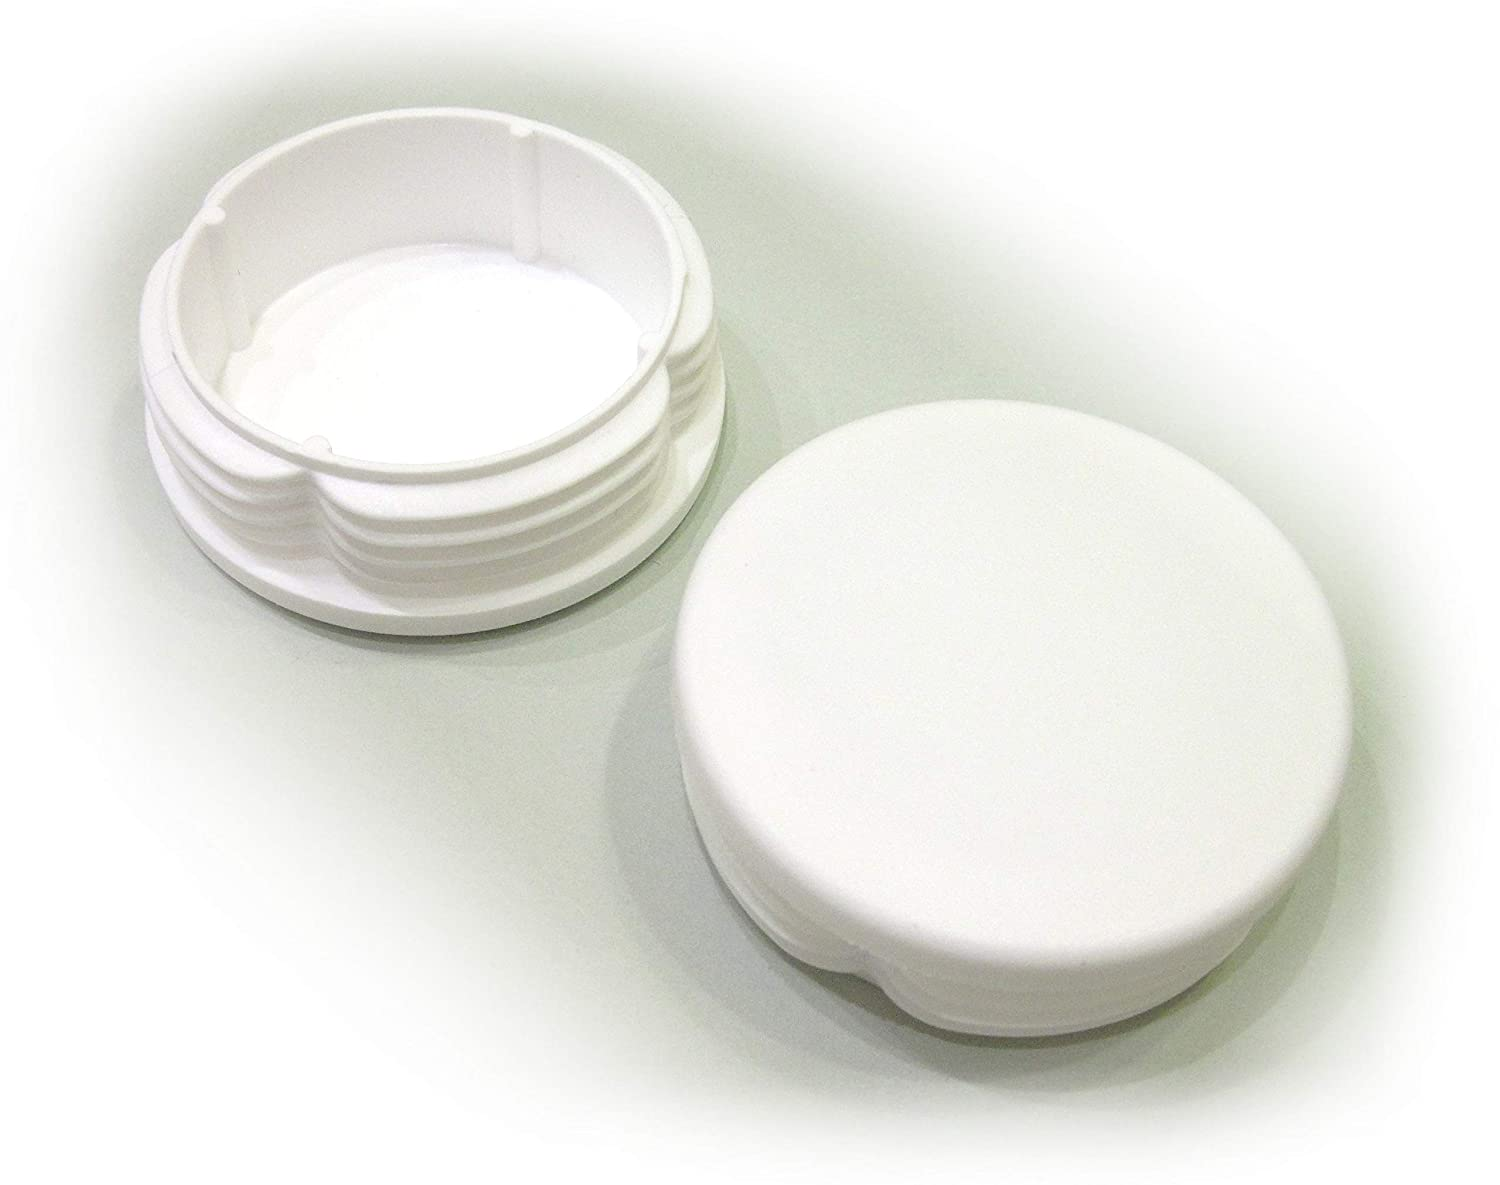 2 1/4 Inch Round Plastic End Cap (for Hole Size from 2 1/32 to 2 5/32, Including 2 1/8 inches), Cover for Steel Fence Post, Furniture Finishing Plug (White, 2)